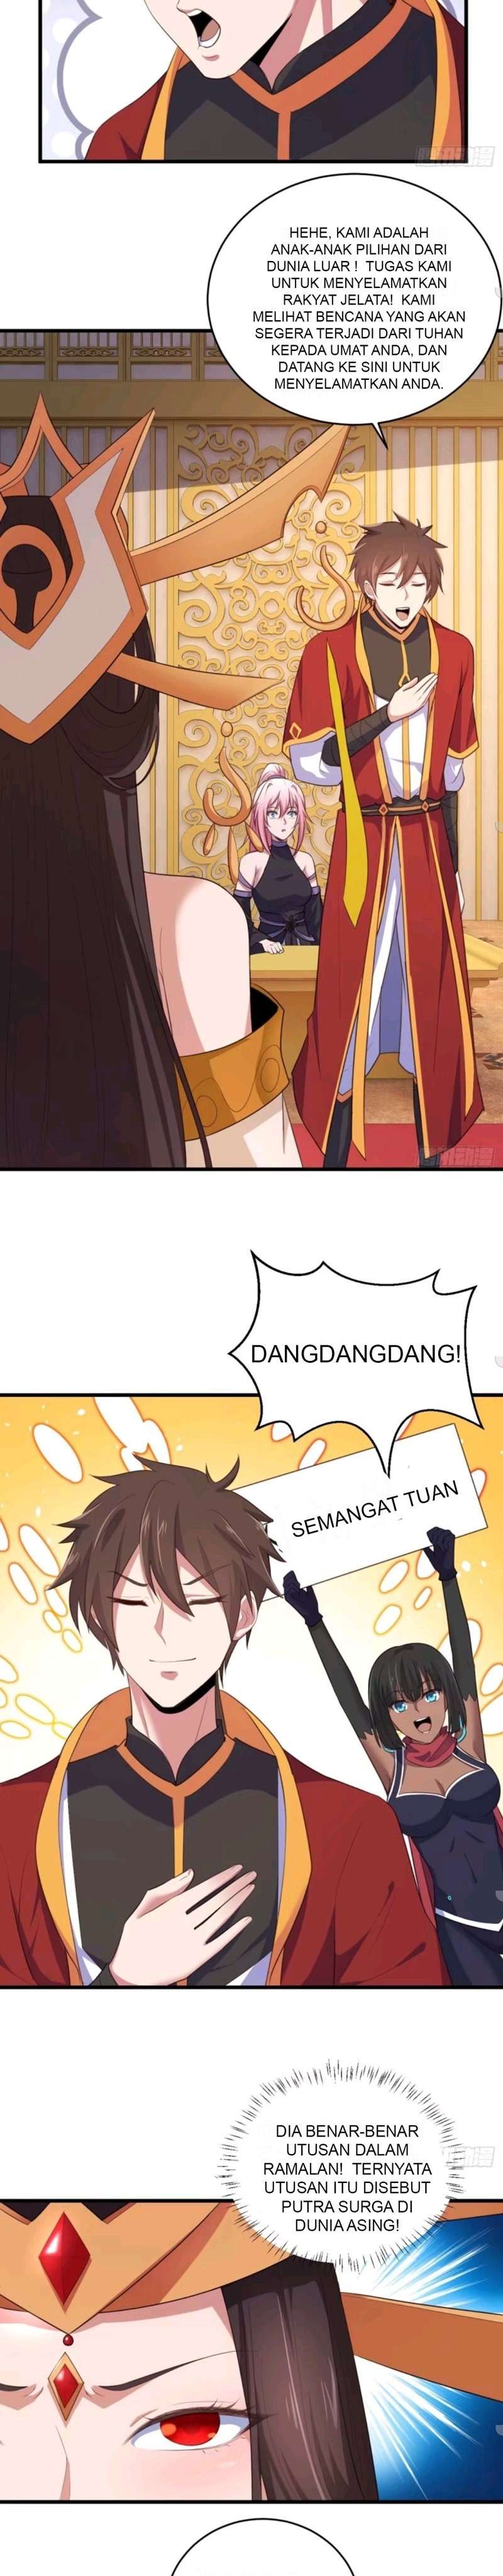 My Harem Depend on Drawing Cards Chapter 76